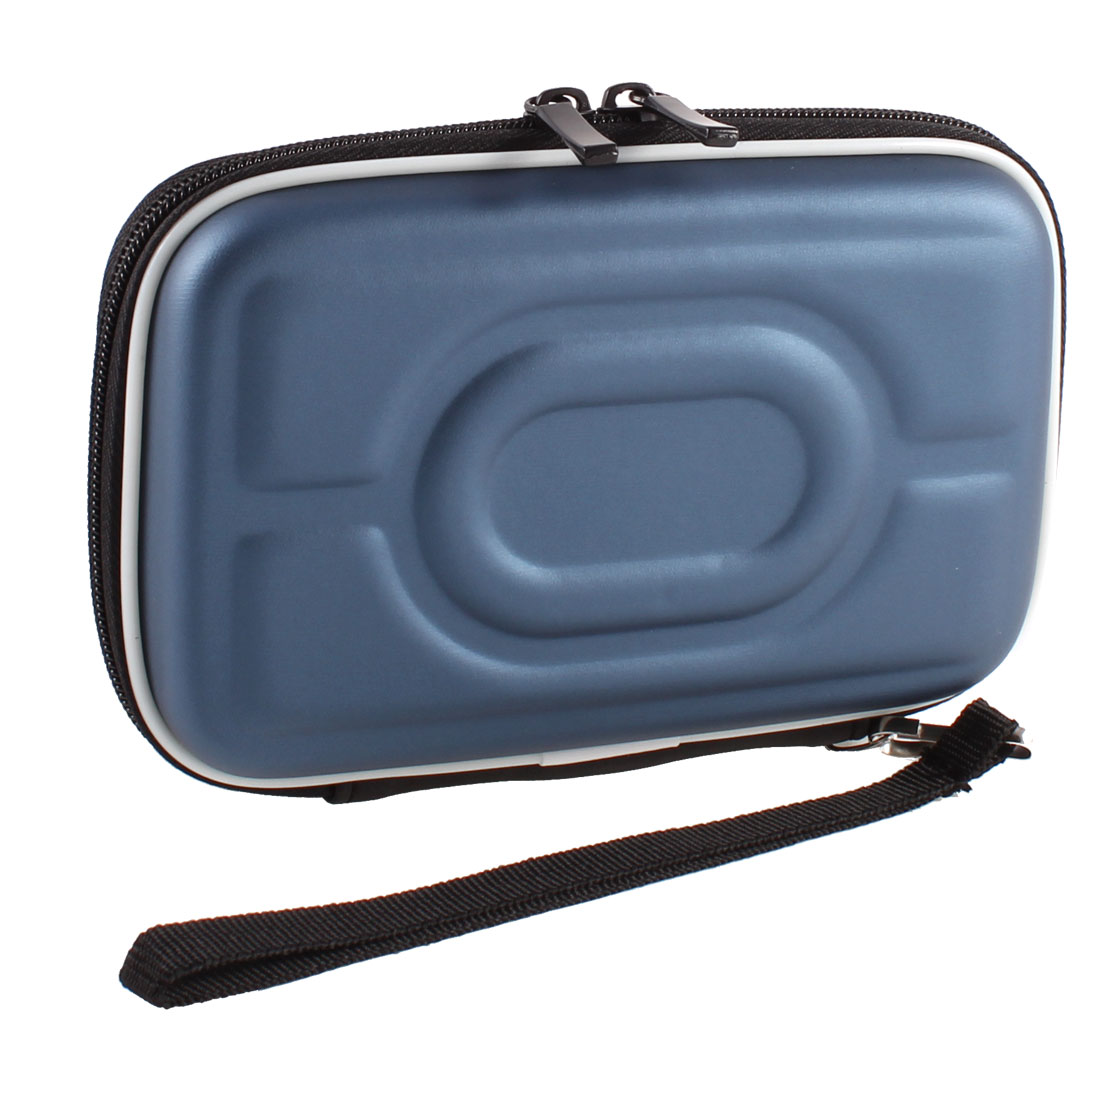 "Zip-up EVA Carrying Case Sleeve Bag Pouch Dark Blue for 2.5"" HDD Hard Drive Disk"